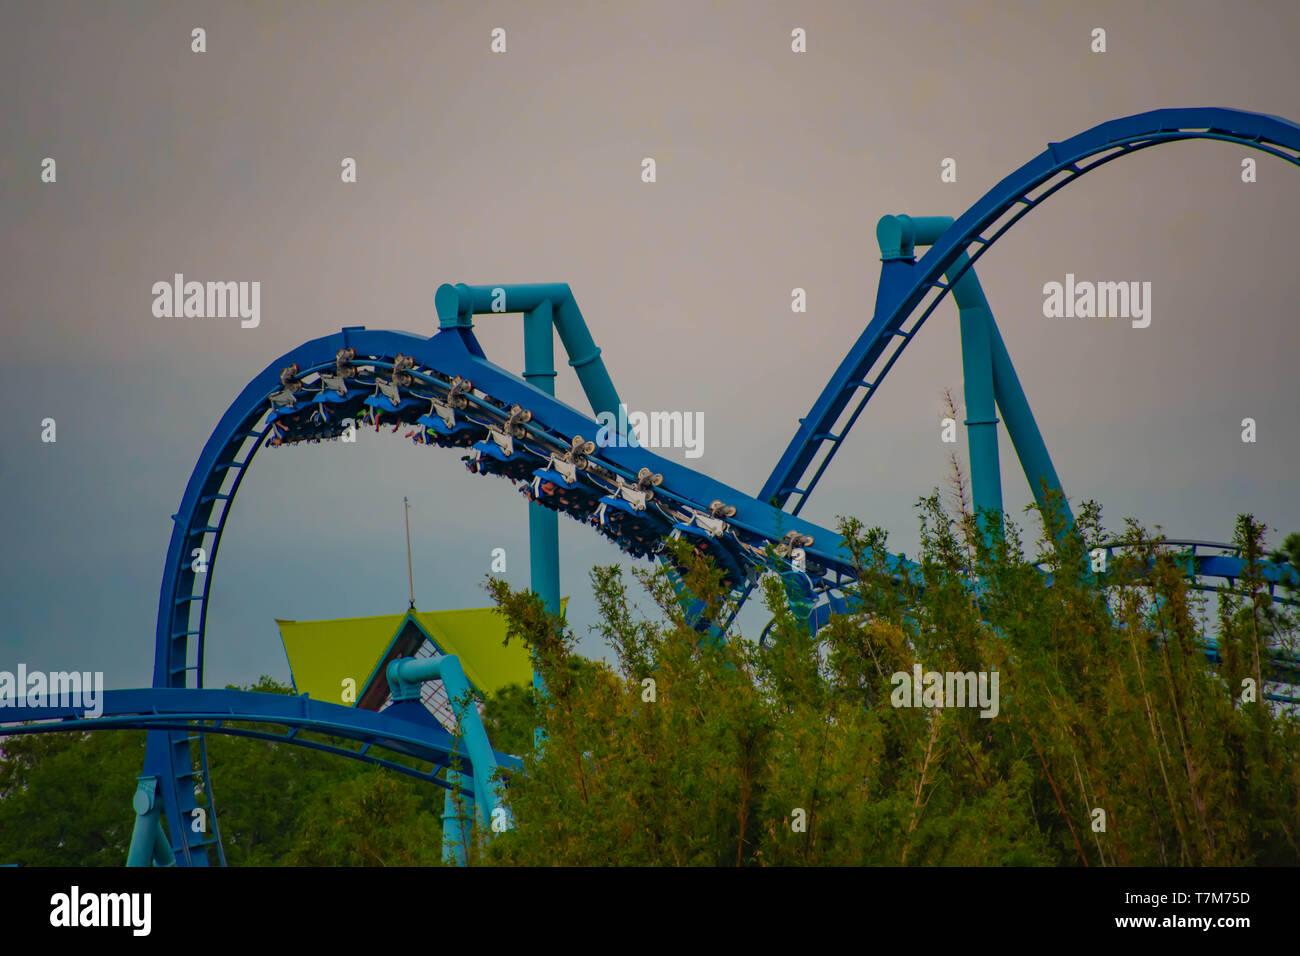 Orlando, Florida. March 17, 2019. People enjoying Manta Ray rollercoaster at Seaworld  in International Drive Area . Stock Photo